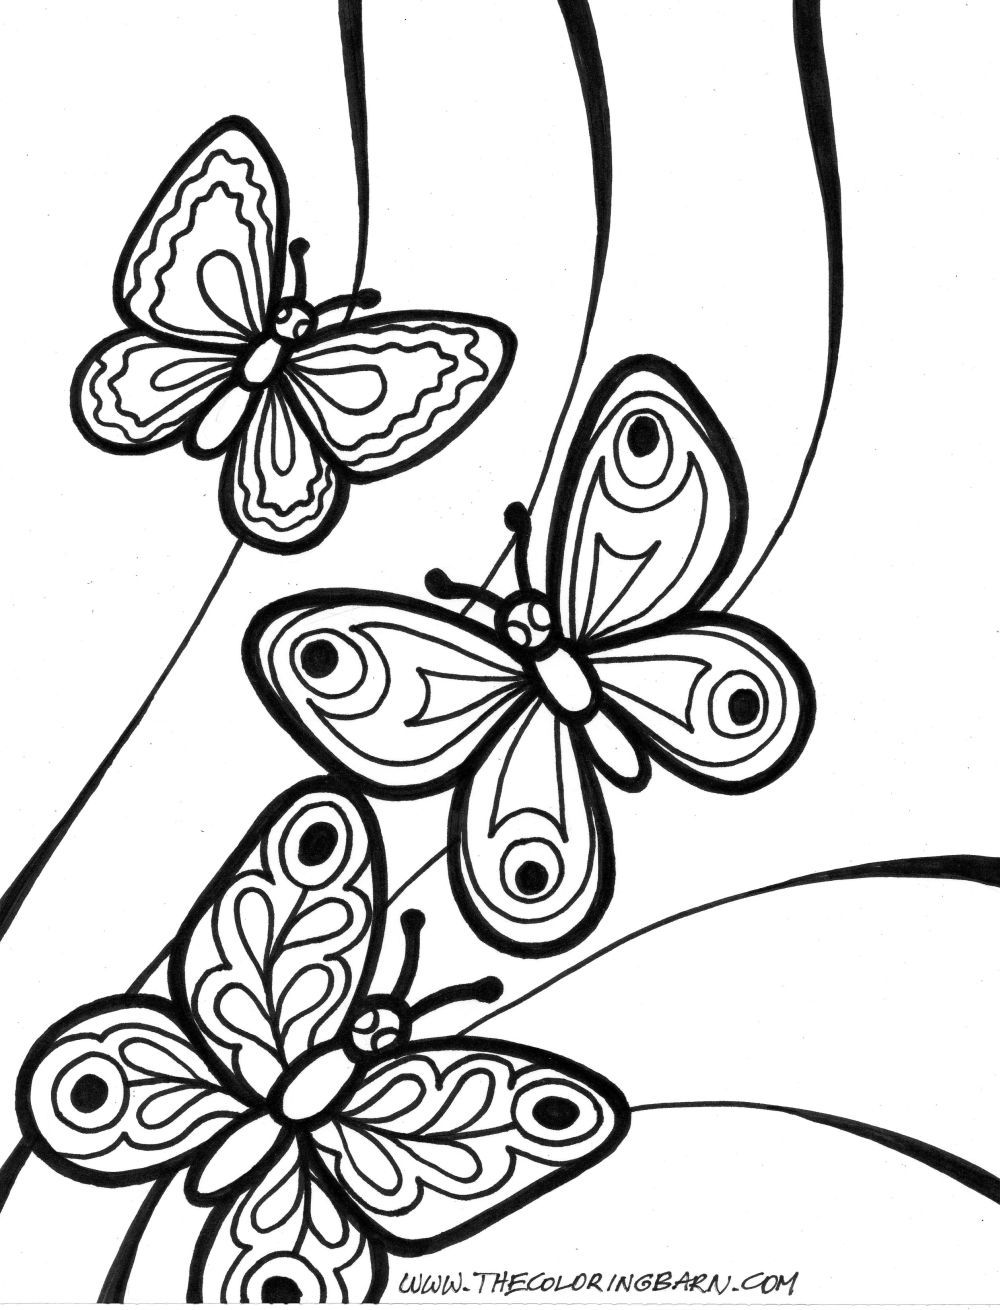 Butterfly Coloring Pages Butterfly Coloring Page Flower Coloring Pages Free Printable Coloring Pages